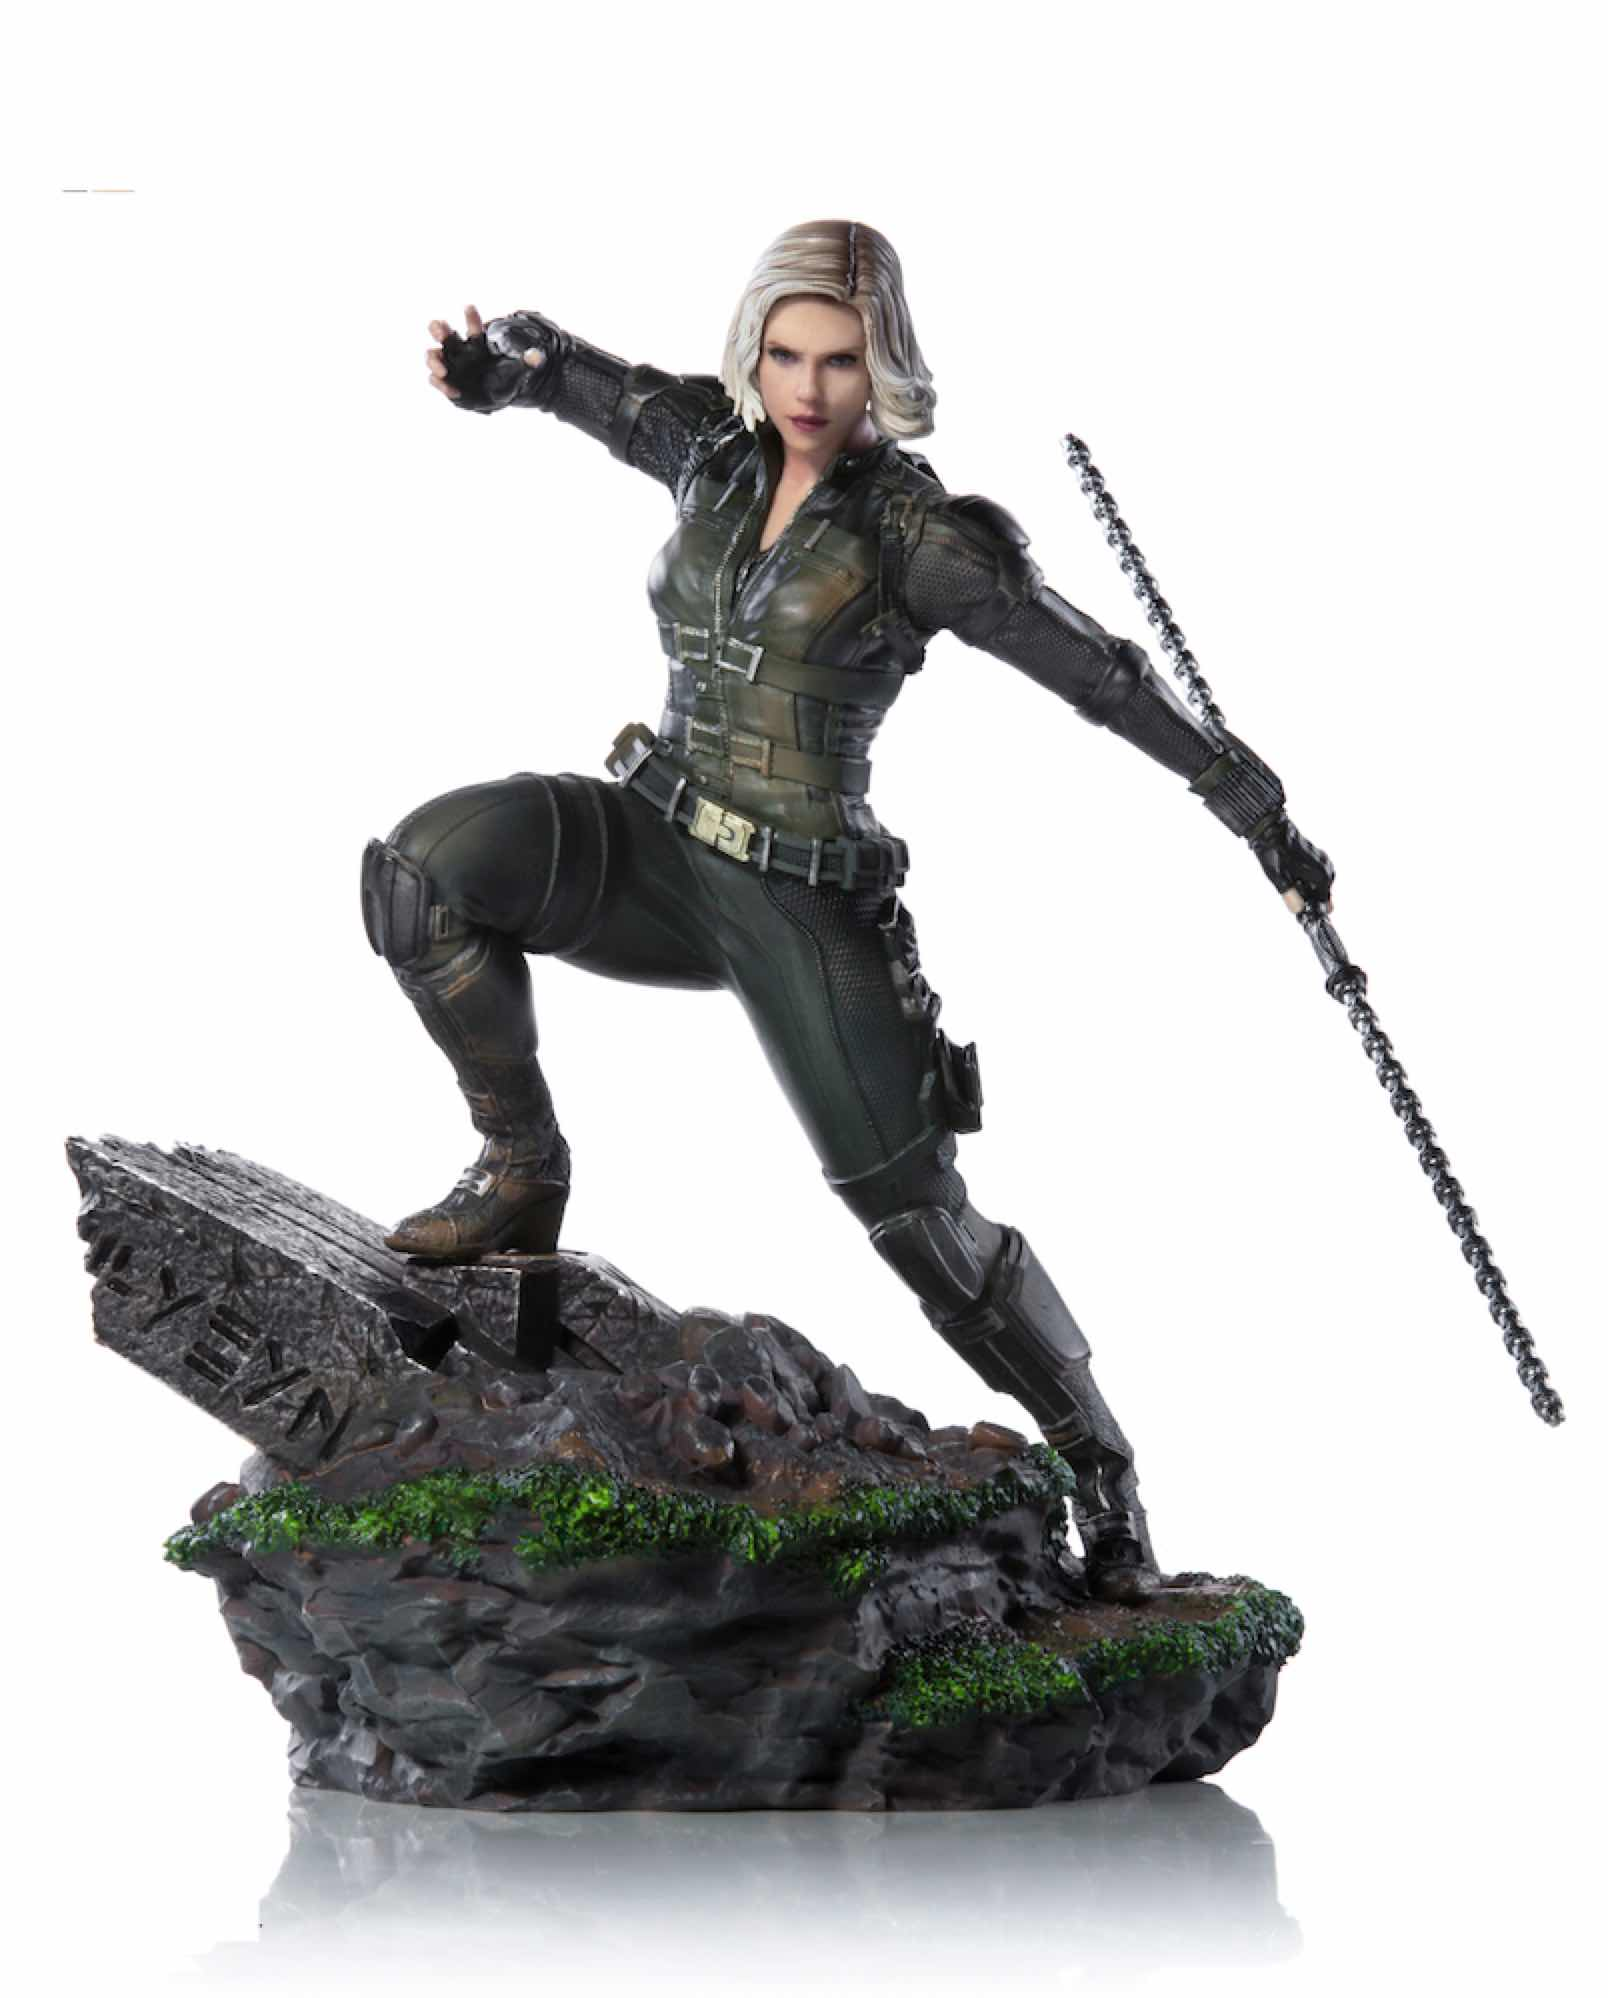 BLACK WIDOW FIG 18 CM AVENGERS INFINITY WAR IRON STUDIOS BDS 1/10 ART SCALE